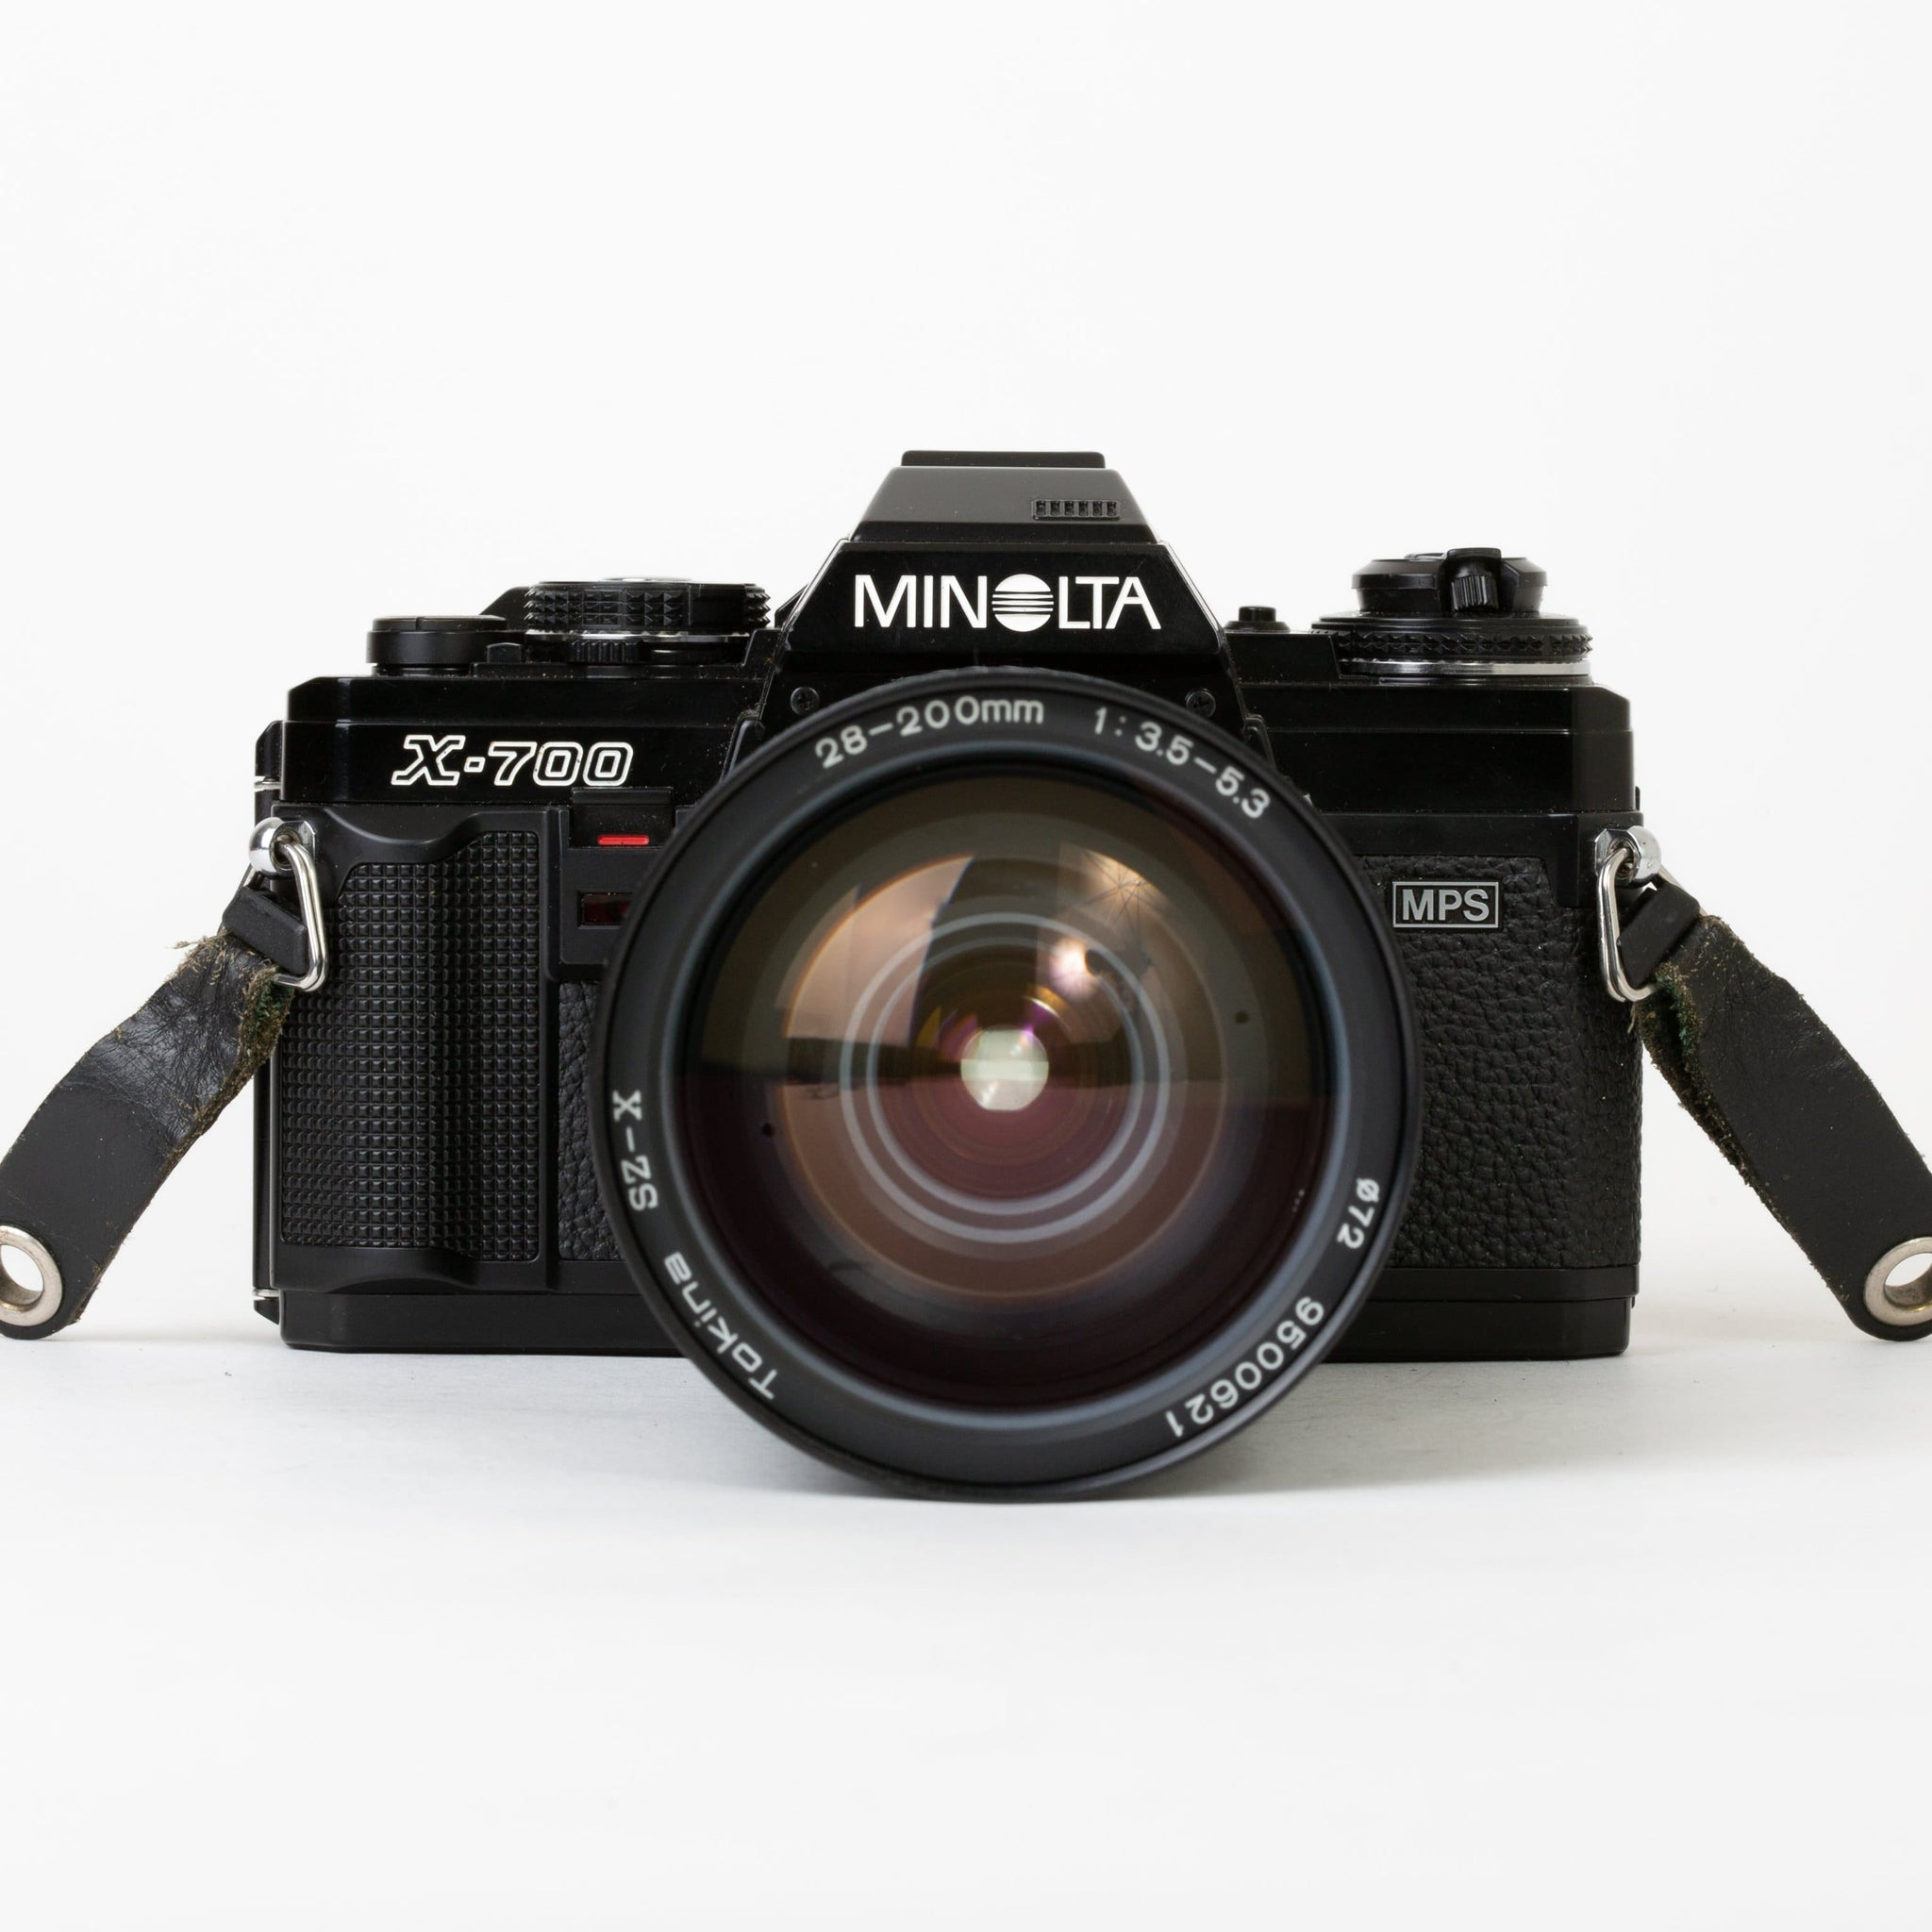 Minolta X-700 MPS with 28-200mm f/3.5-5.3 Lens